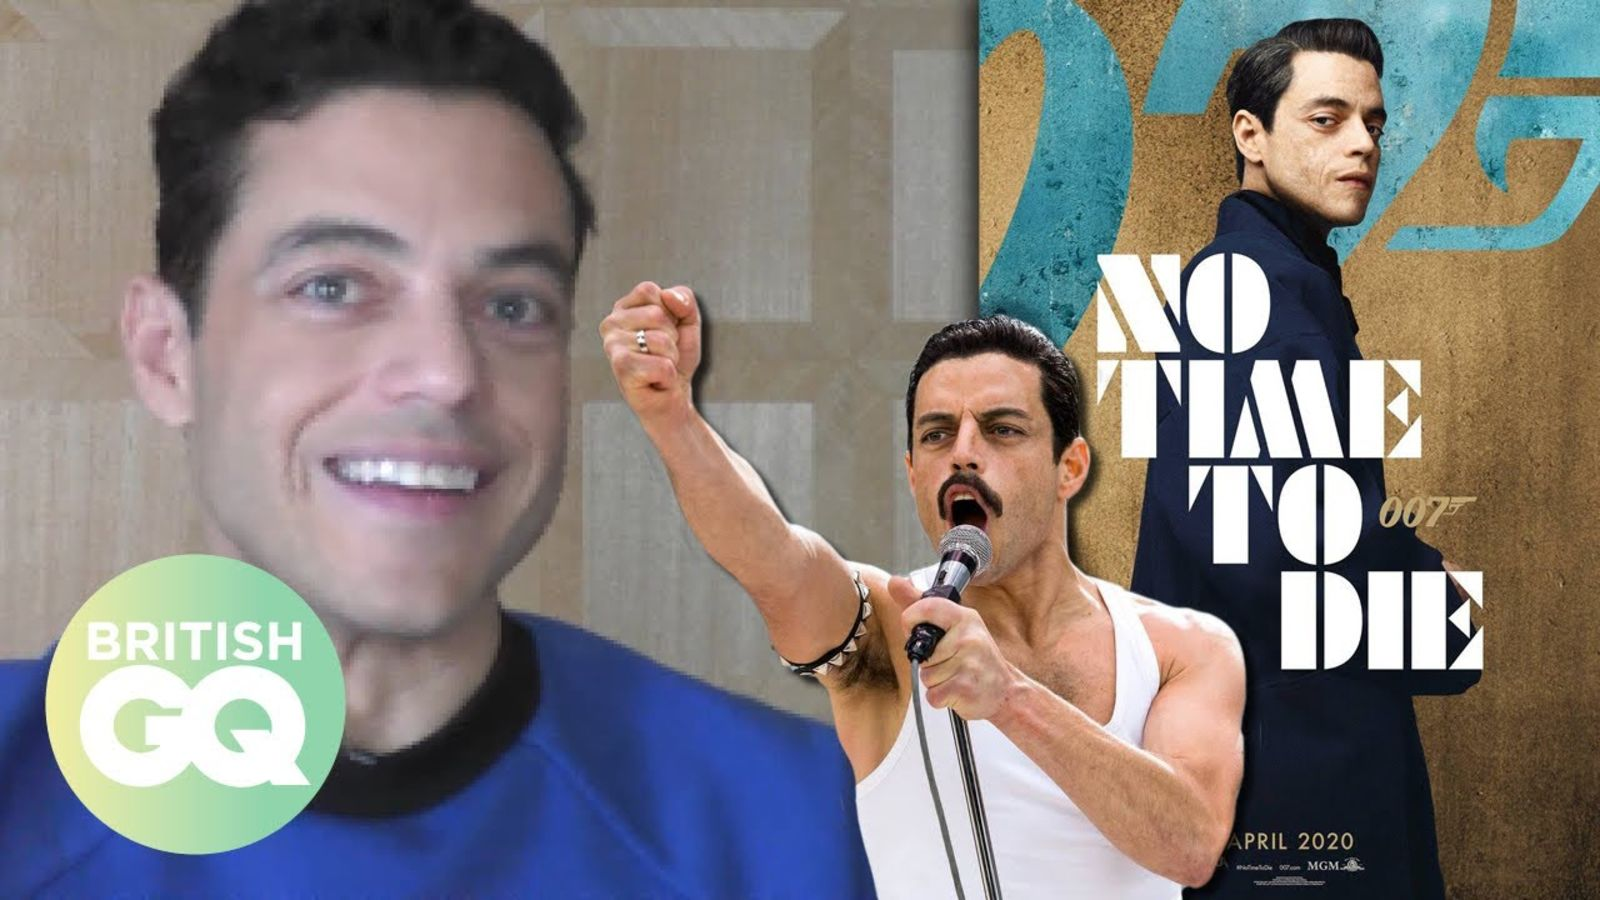 Rami Malek: 'Playing Safin was not psychologically easy for me'